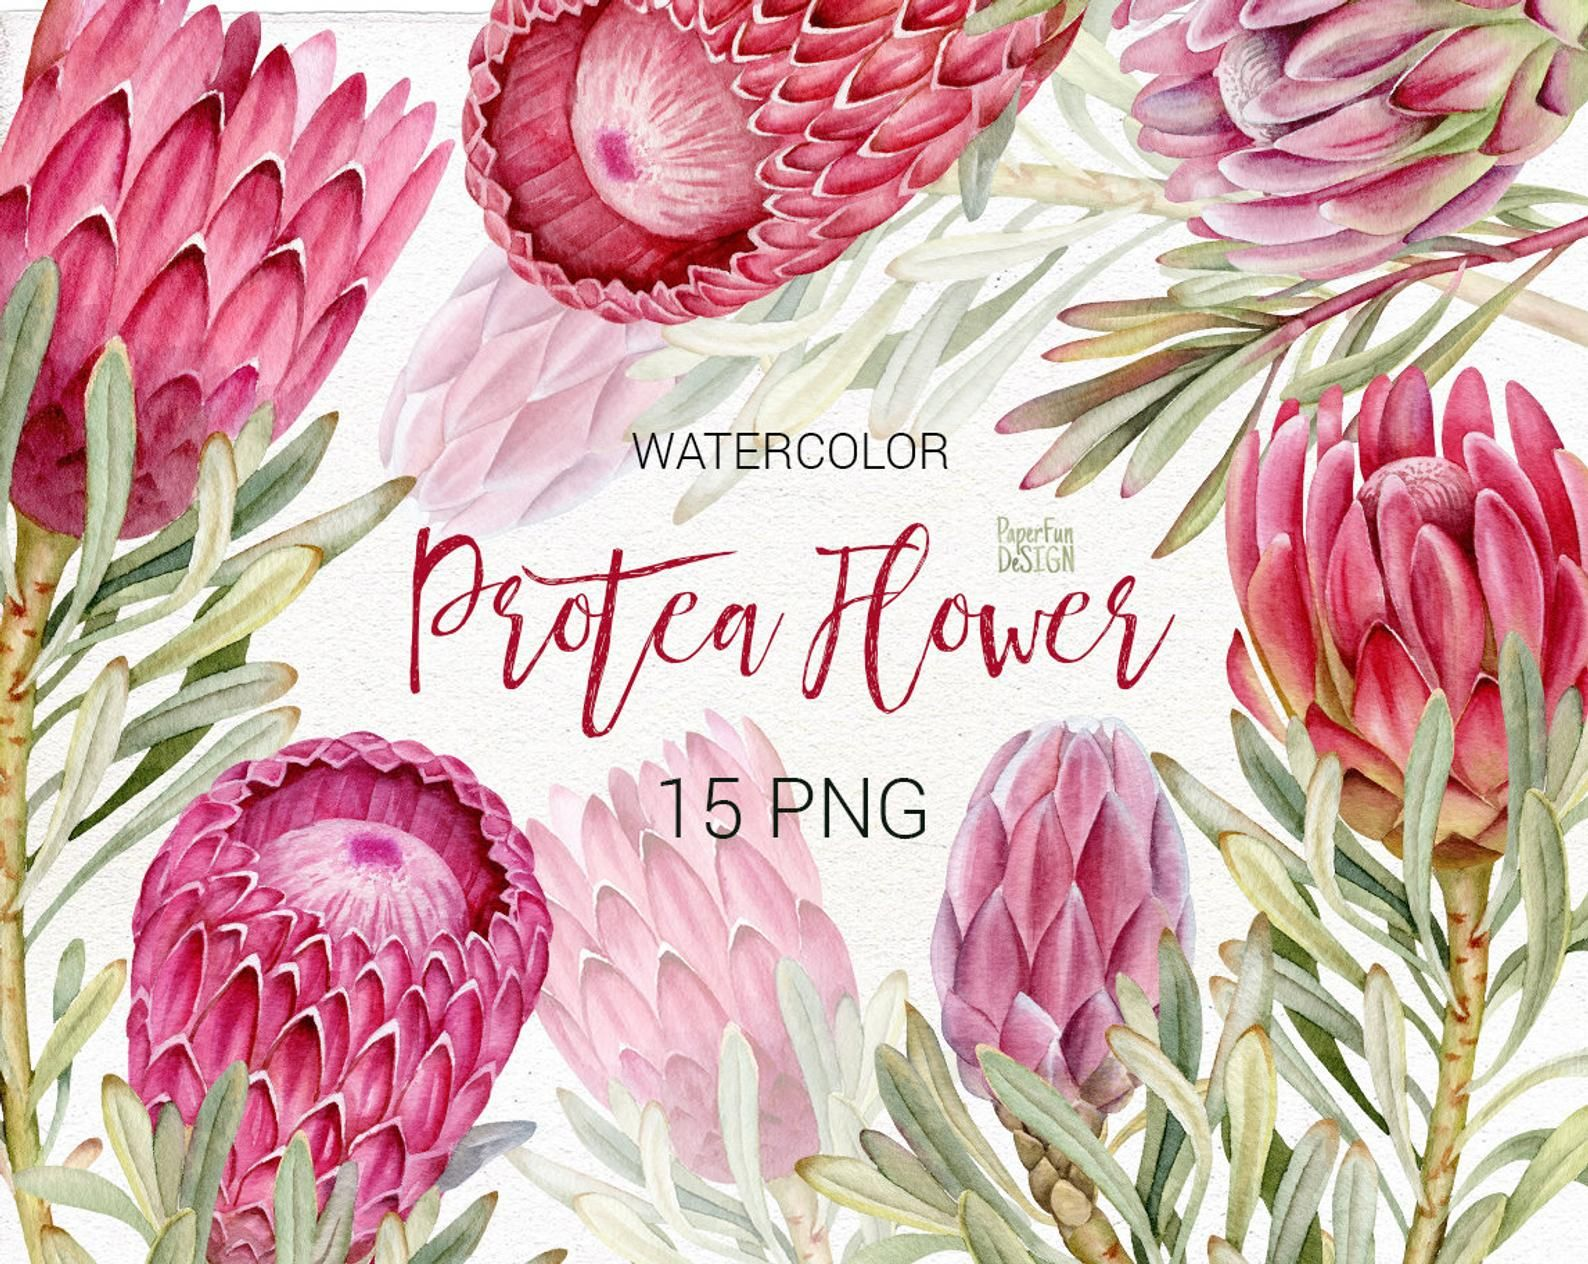 Wedding Watercolor Protea Clip Art Pink Tropical Flowers Png Commercial Use Instant Download Watercolor Flower Illustration Clip Art Protea Art